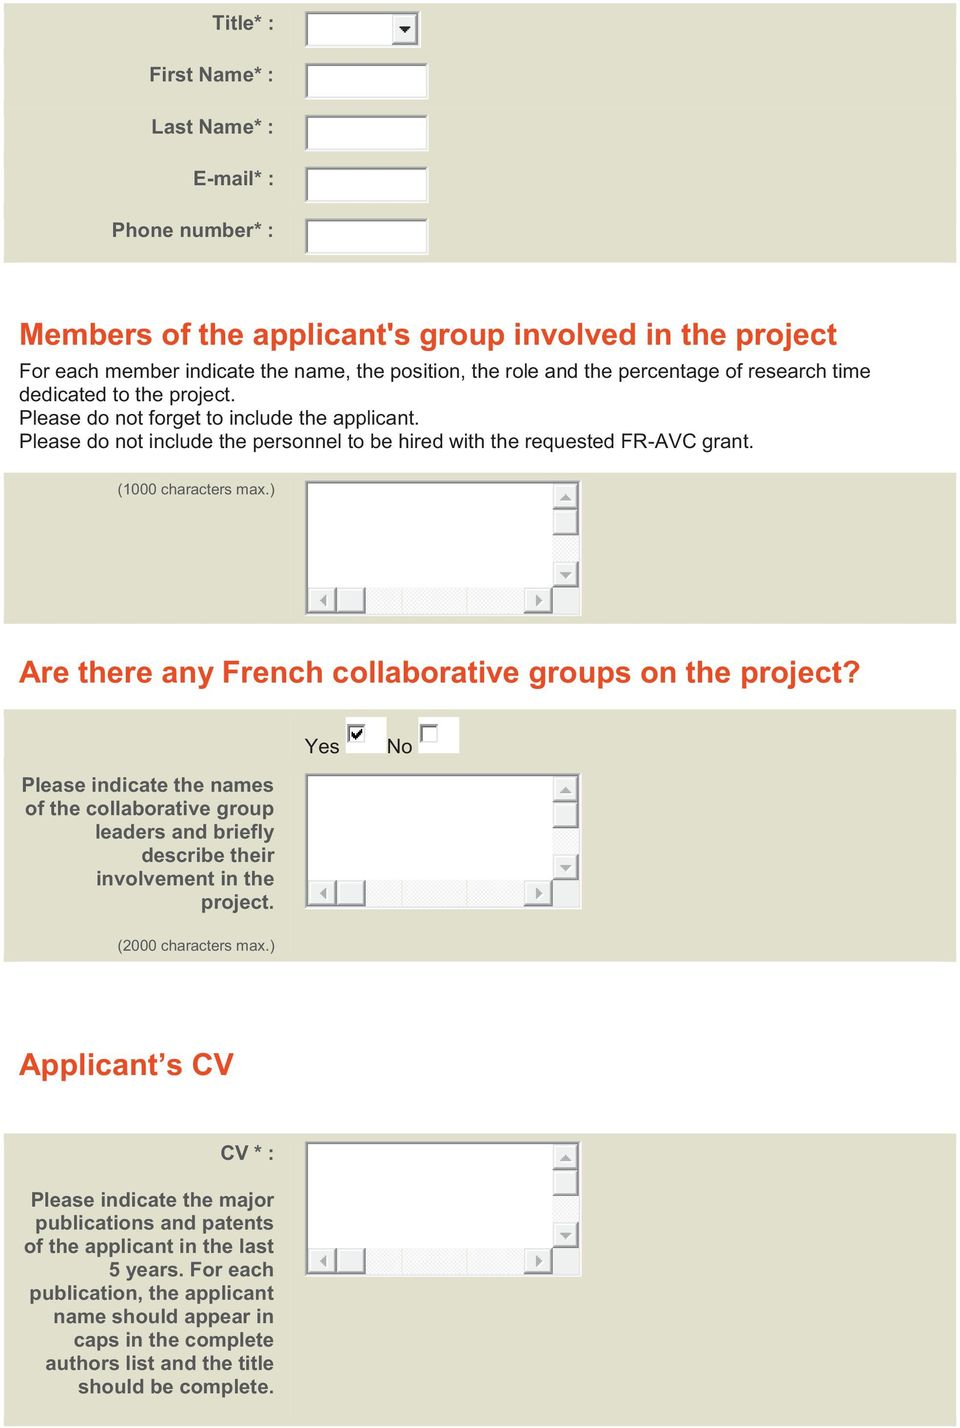 ) Are there any French collaborative groups on the project? Please indicate the names of the collaborative group leaders and briefly describe their involvement in the project. (2000 characters max.